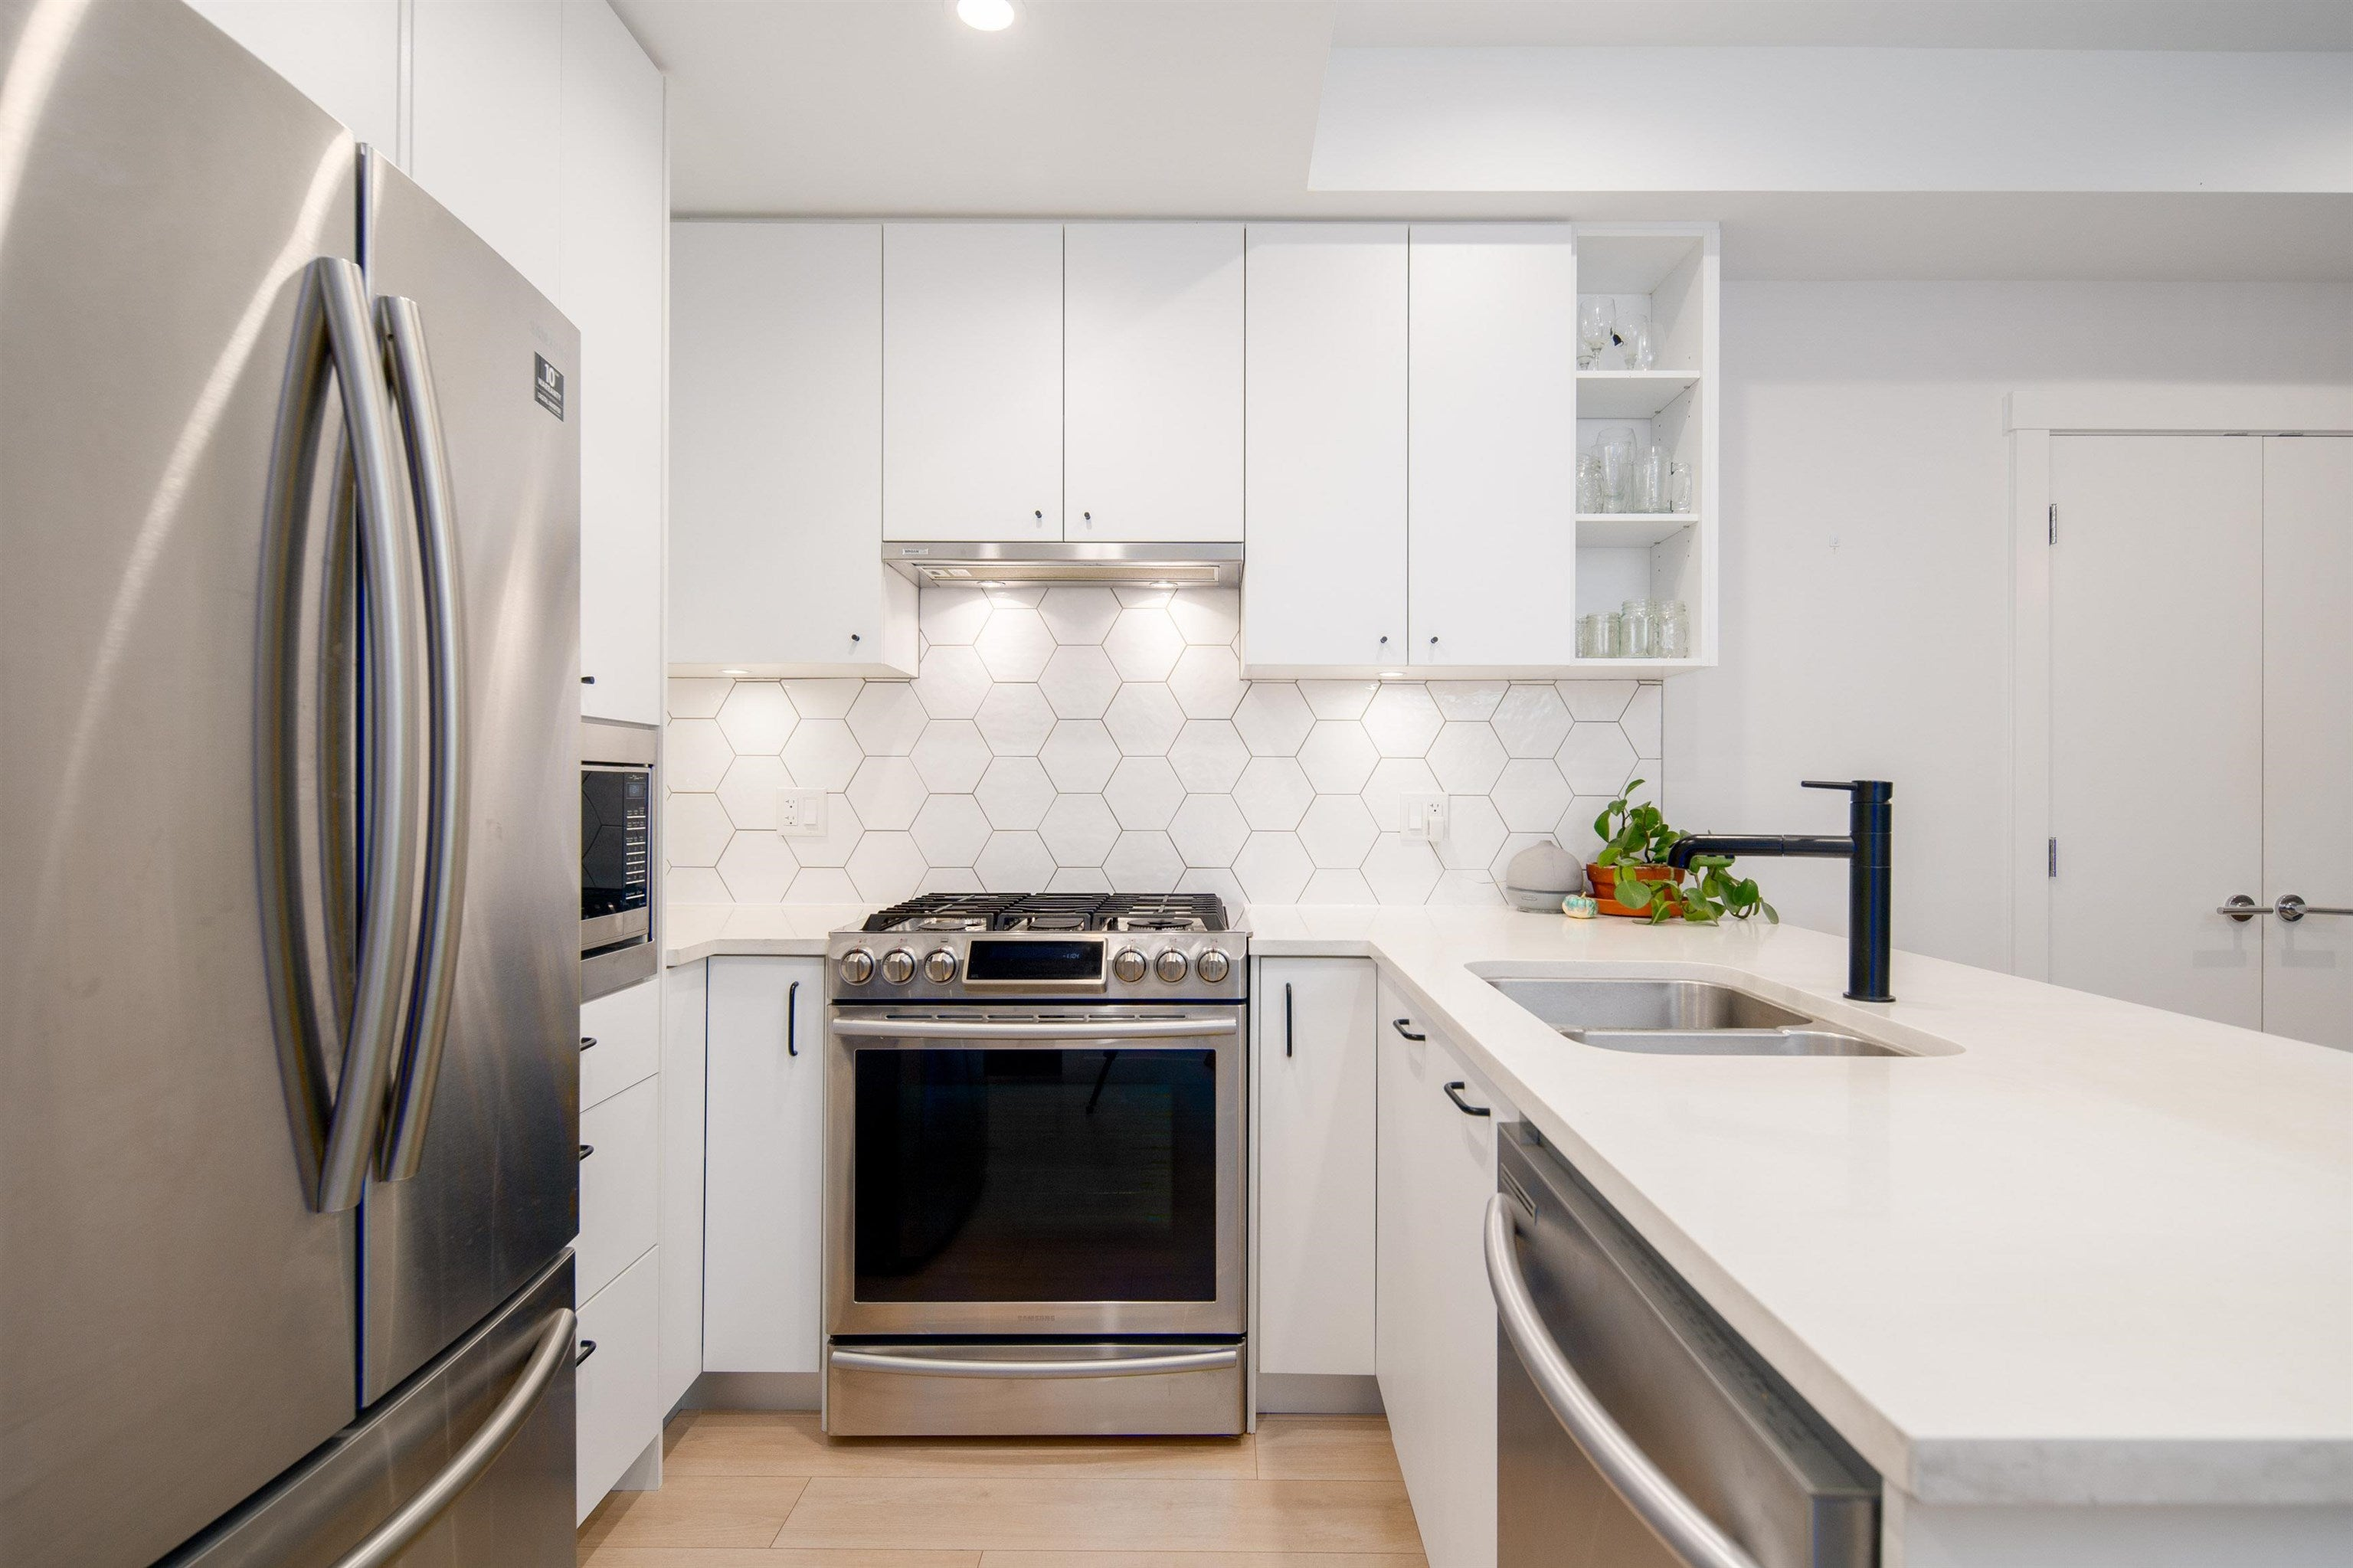 102 1519 CROWN STREET - Lynnmour Apartment/Condo for sale, 3 Bedrooms (R2625295) - #10